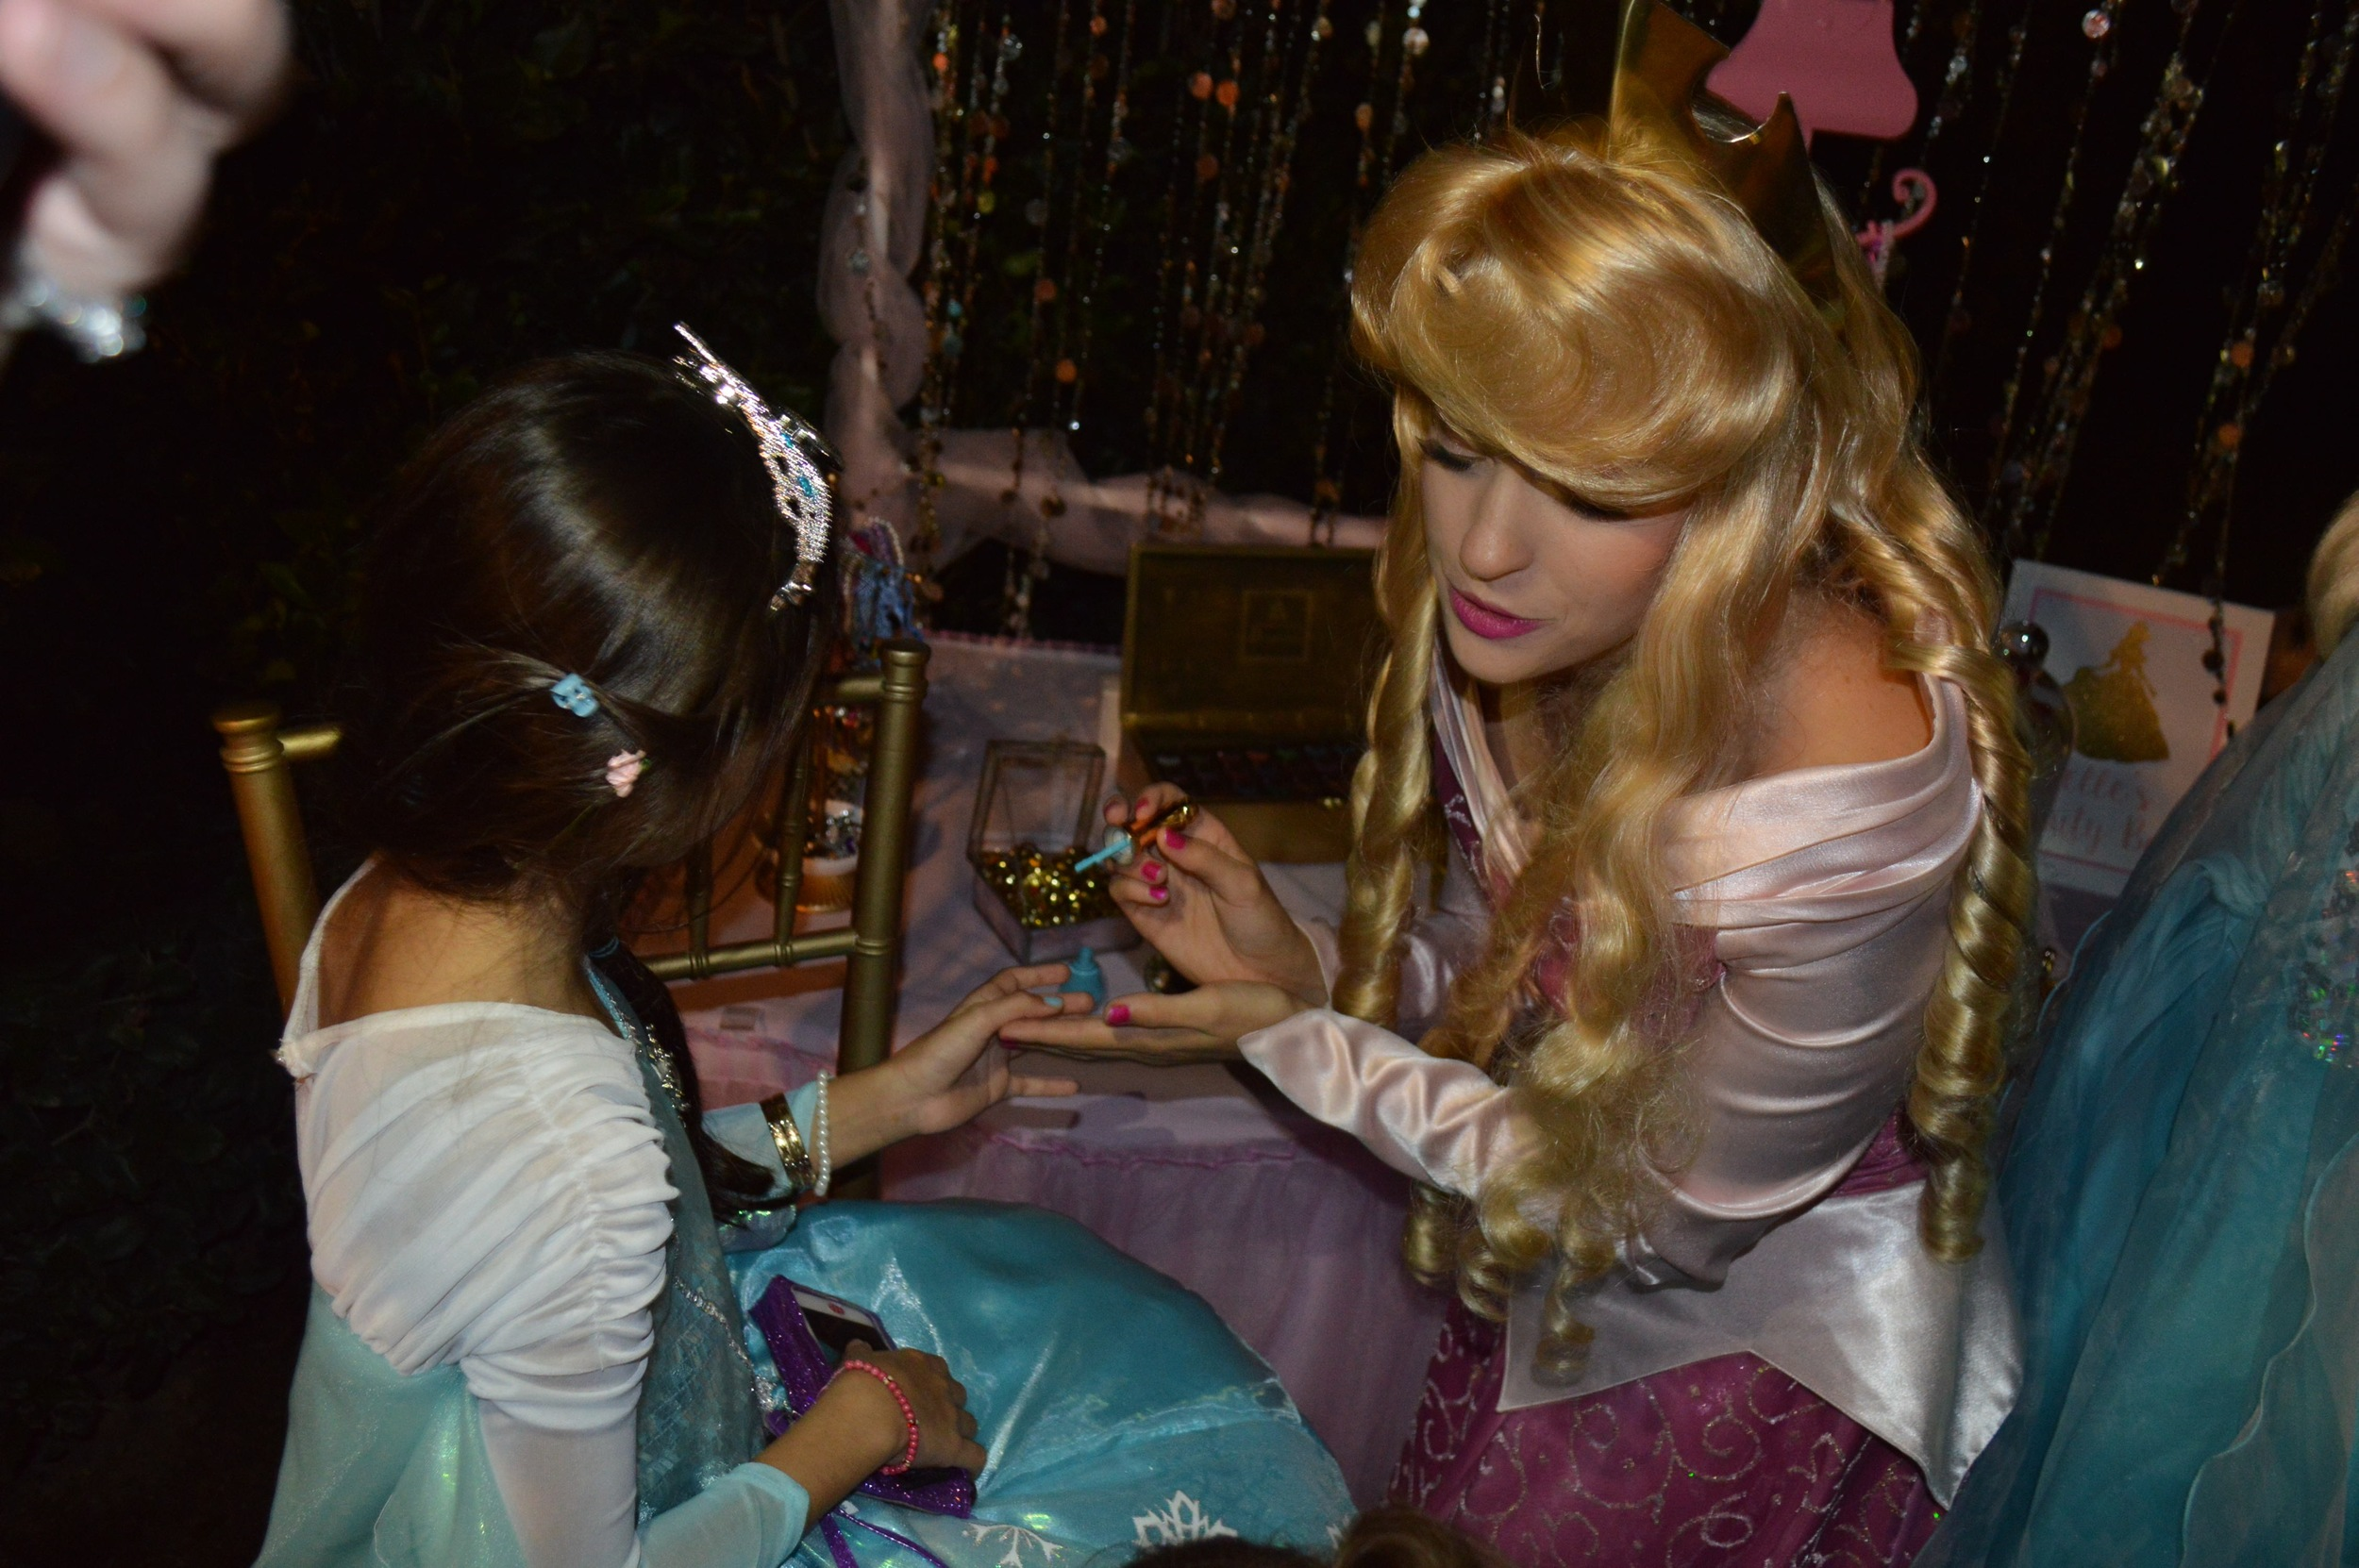 Sleeping Beauty arrived in the evening for manicures and a sing-a-long.